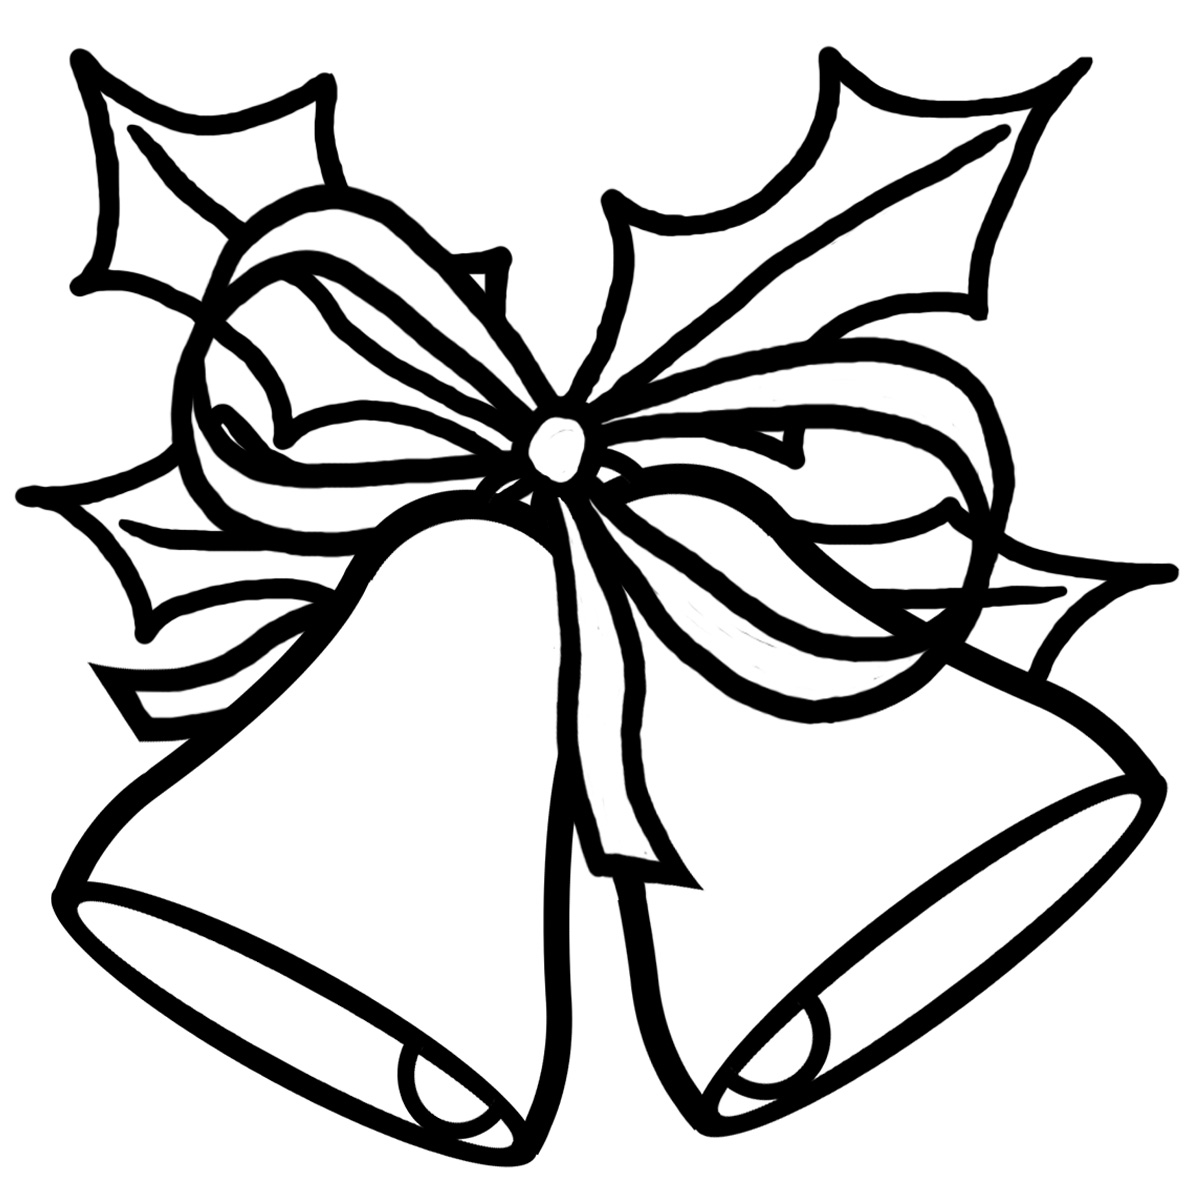 Religious Christmas Clip Art Black And White | Clipart Panda - Free ...